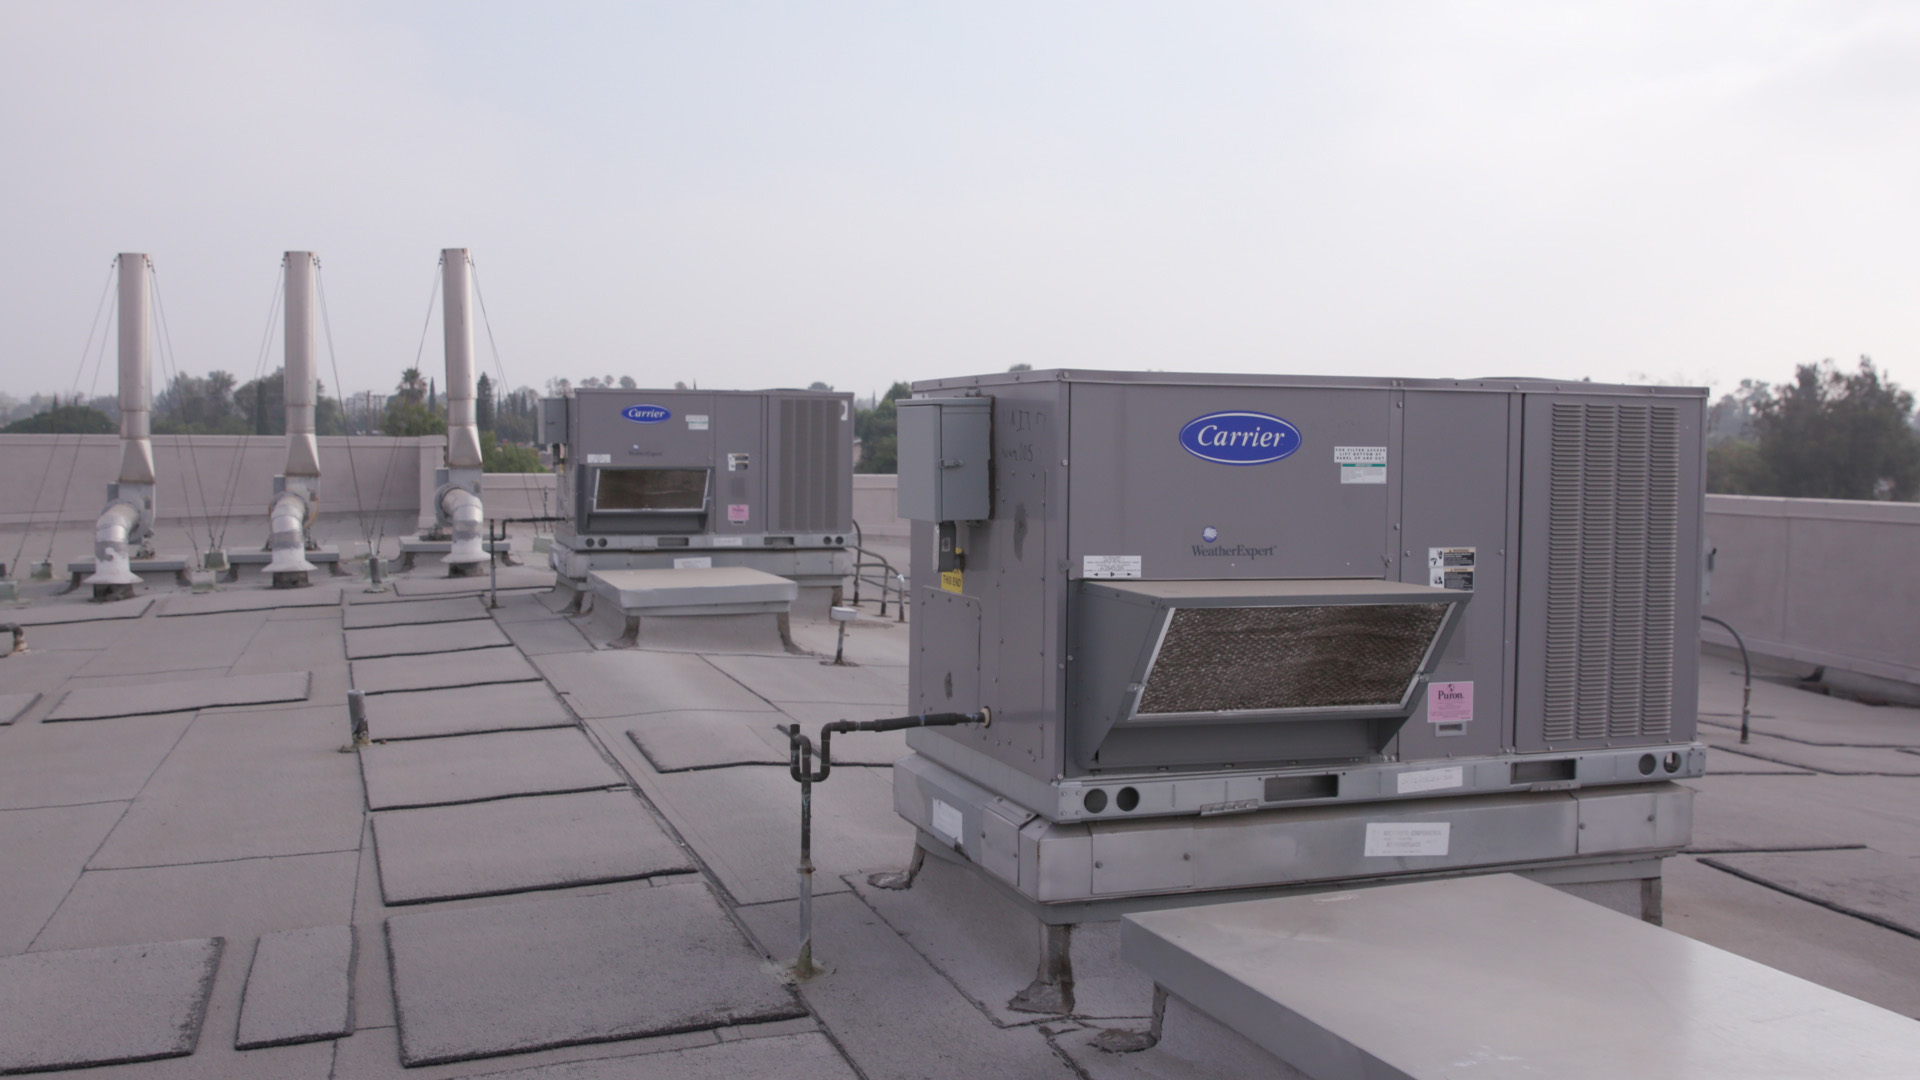 More than 200 new Carrier rooftop units improve comfort and efficiency at 45 sites in California's Fontana School District. The project was recognized by the Department of Energy's Better Building Alliance Program. The district is saving approximately $210,000 in energy costs, an amount that's expected to double when another 200 rooftop systems are installed next summer.